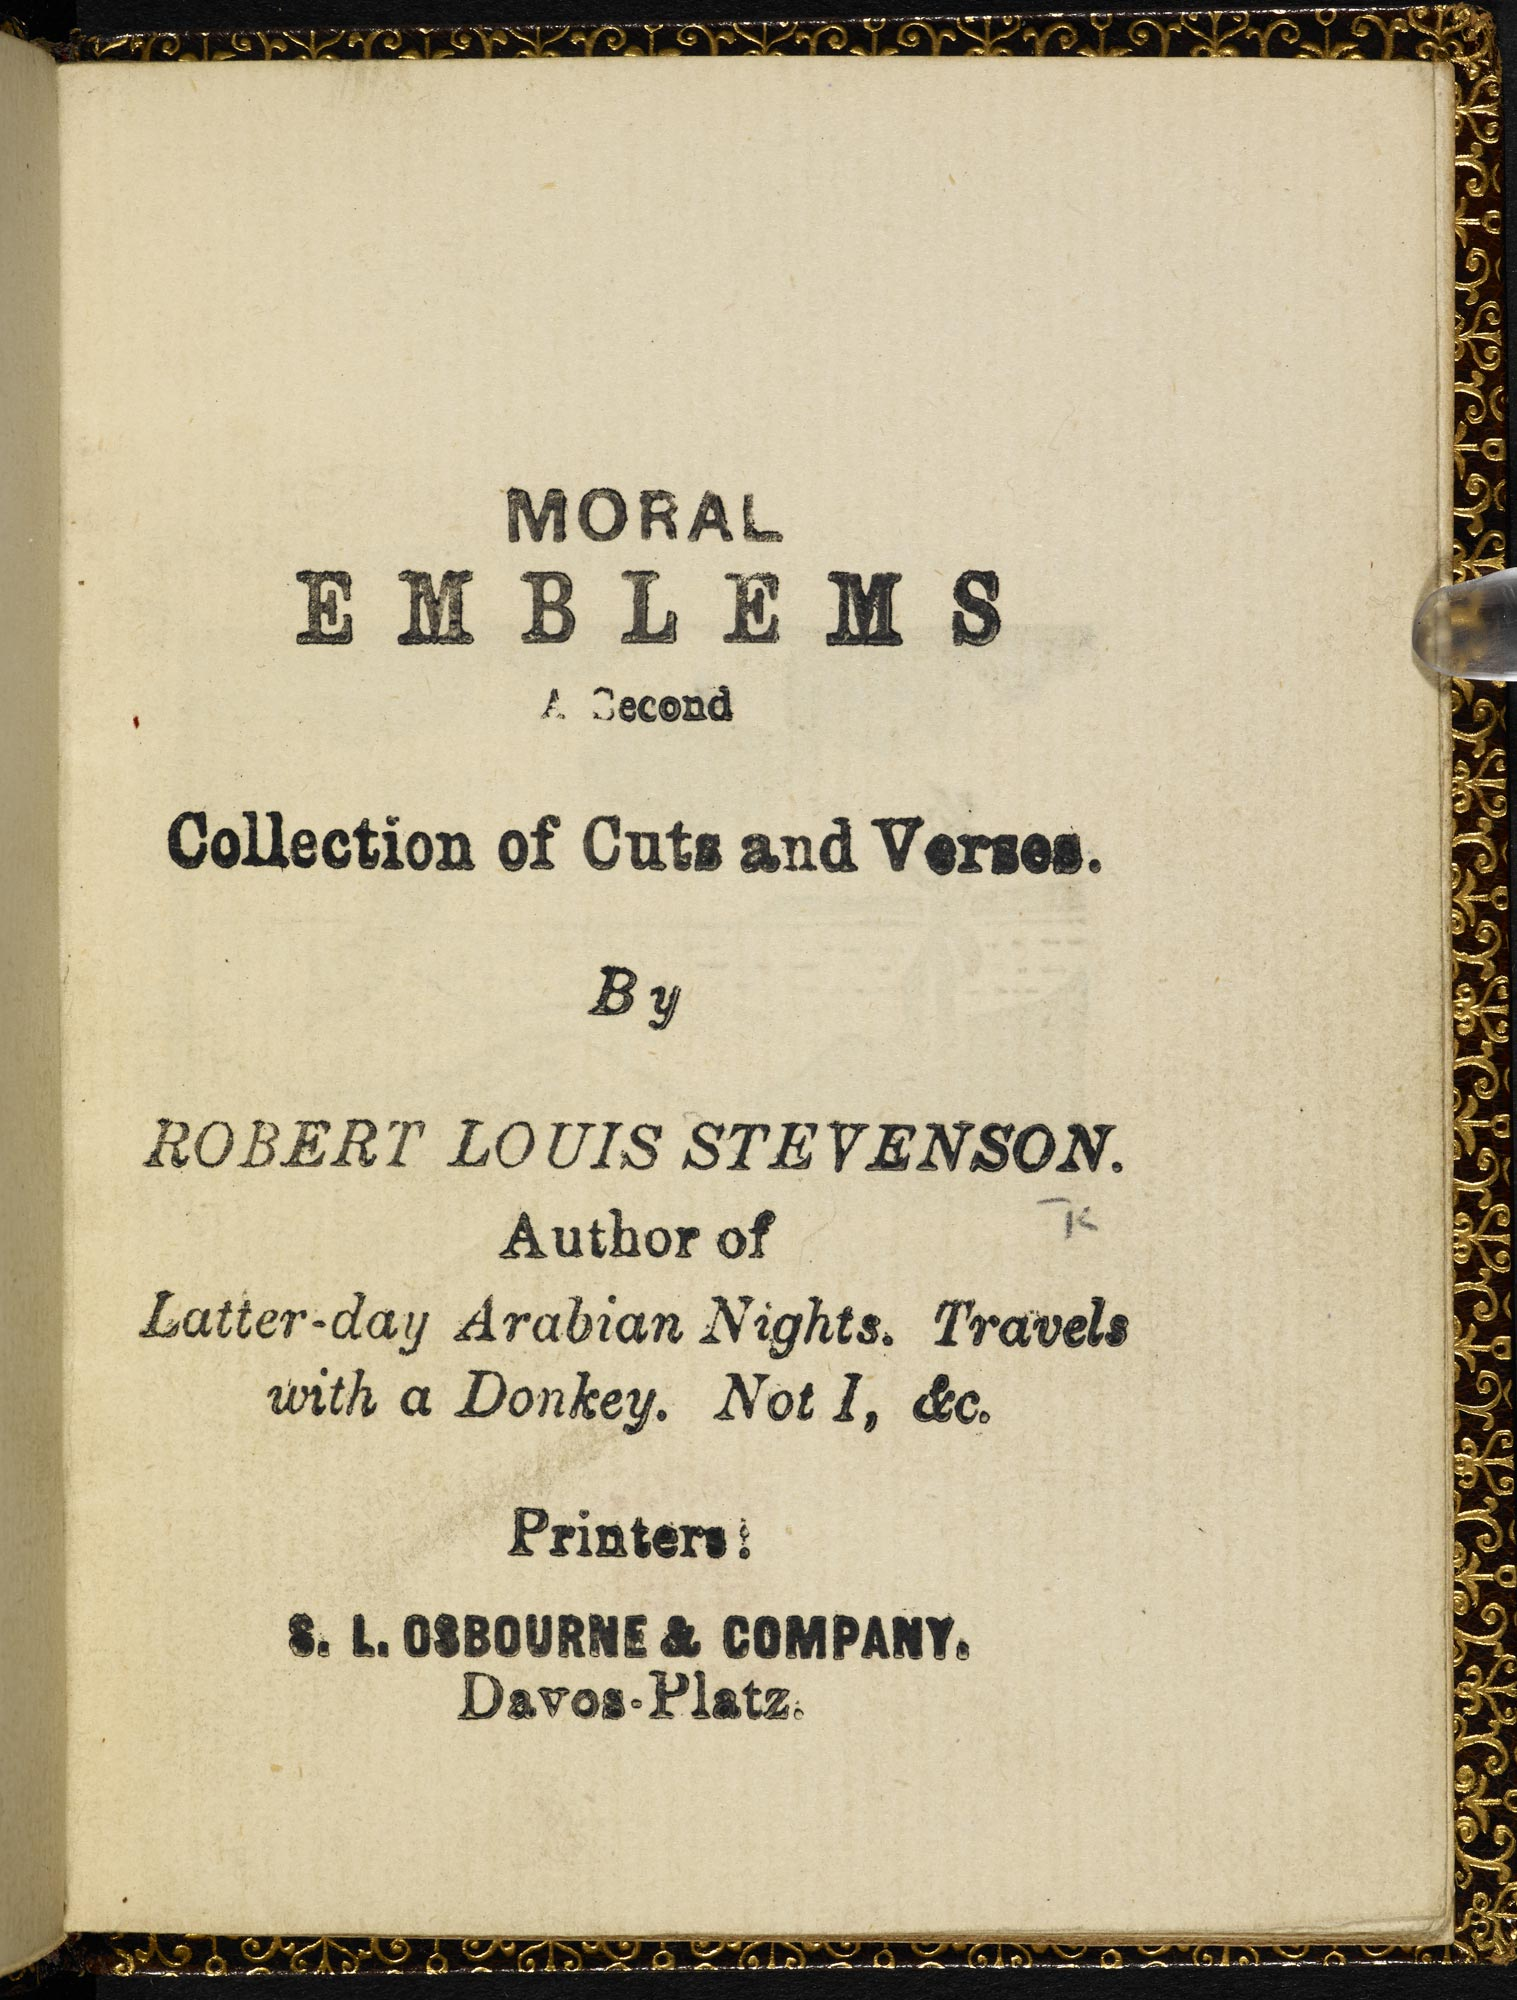 Moral Emblems by Robert Louis Stevenson